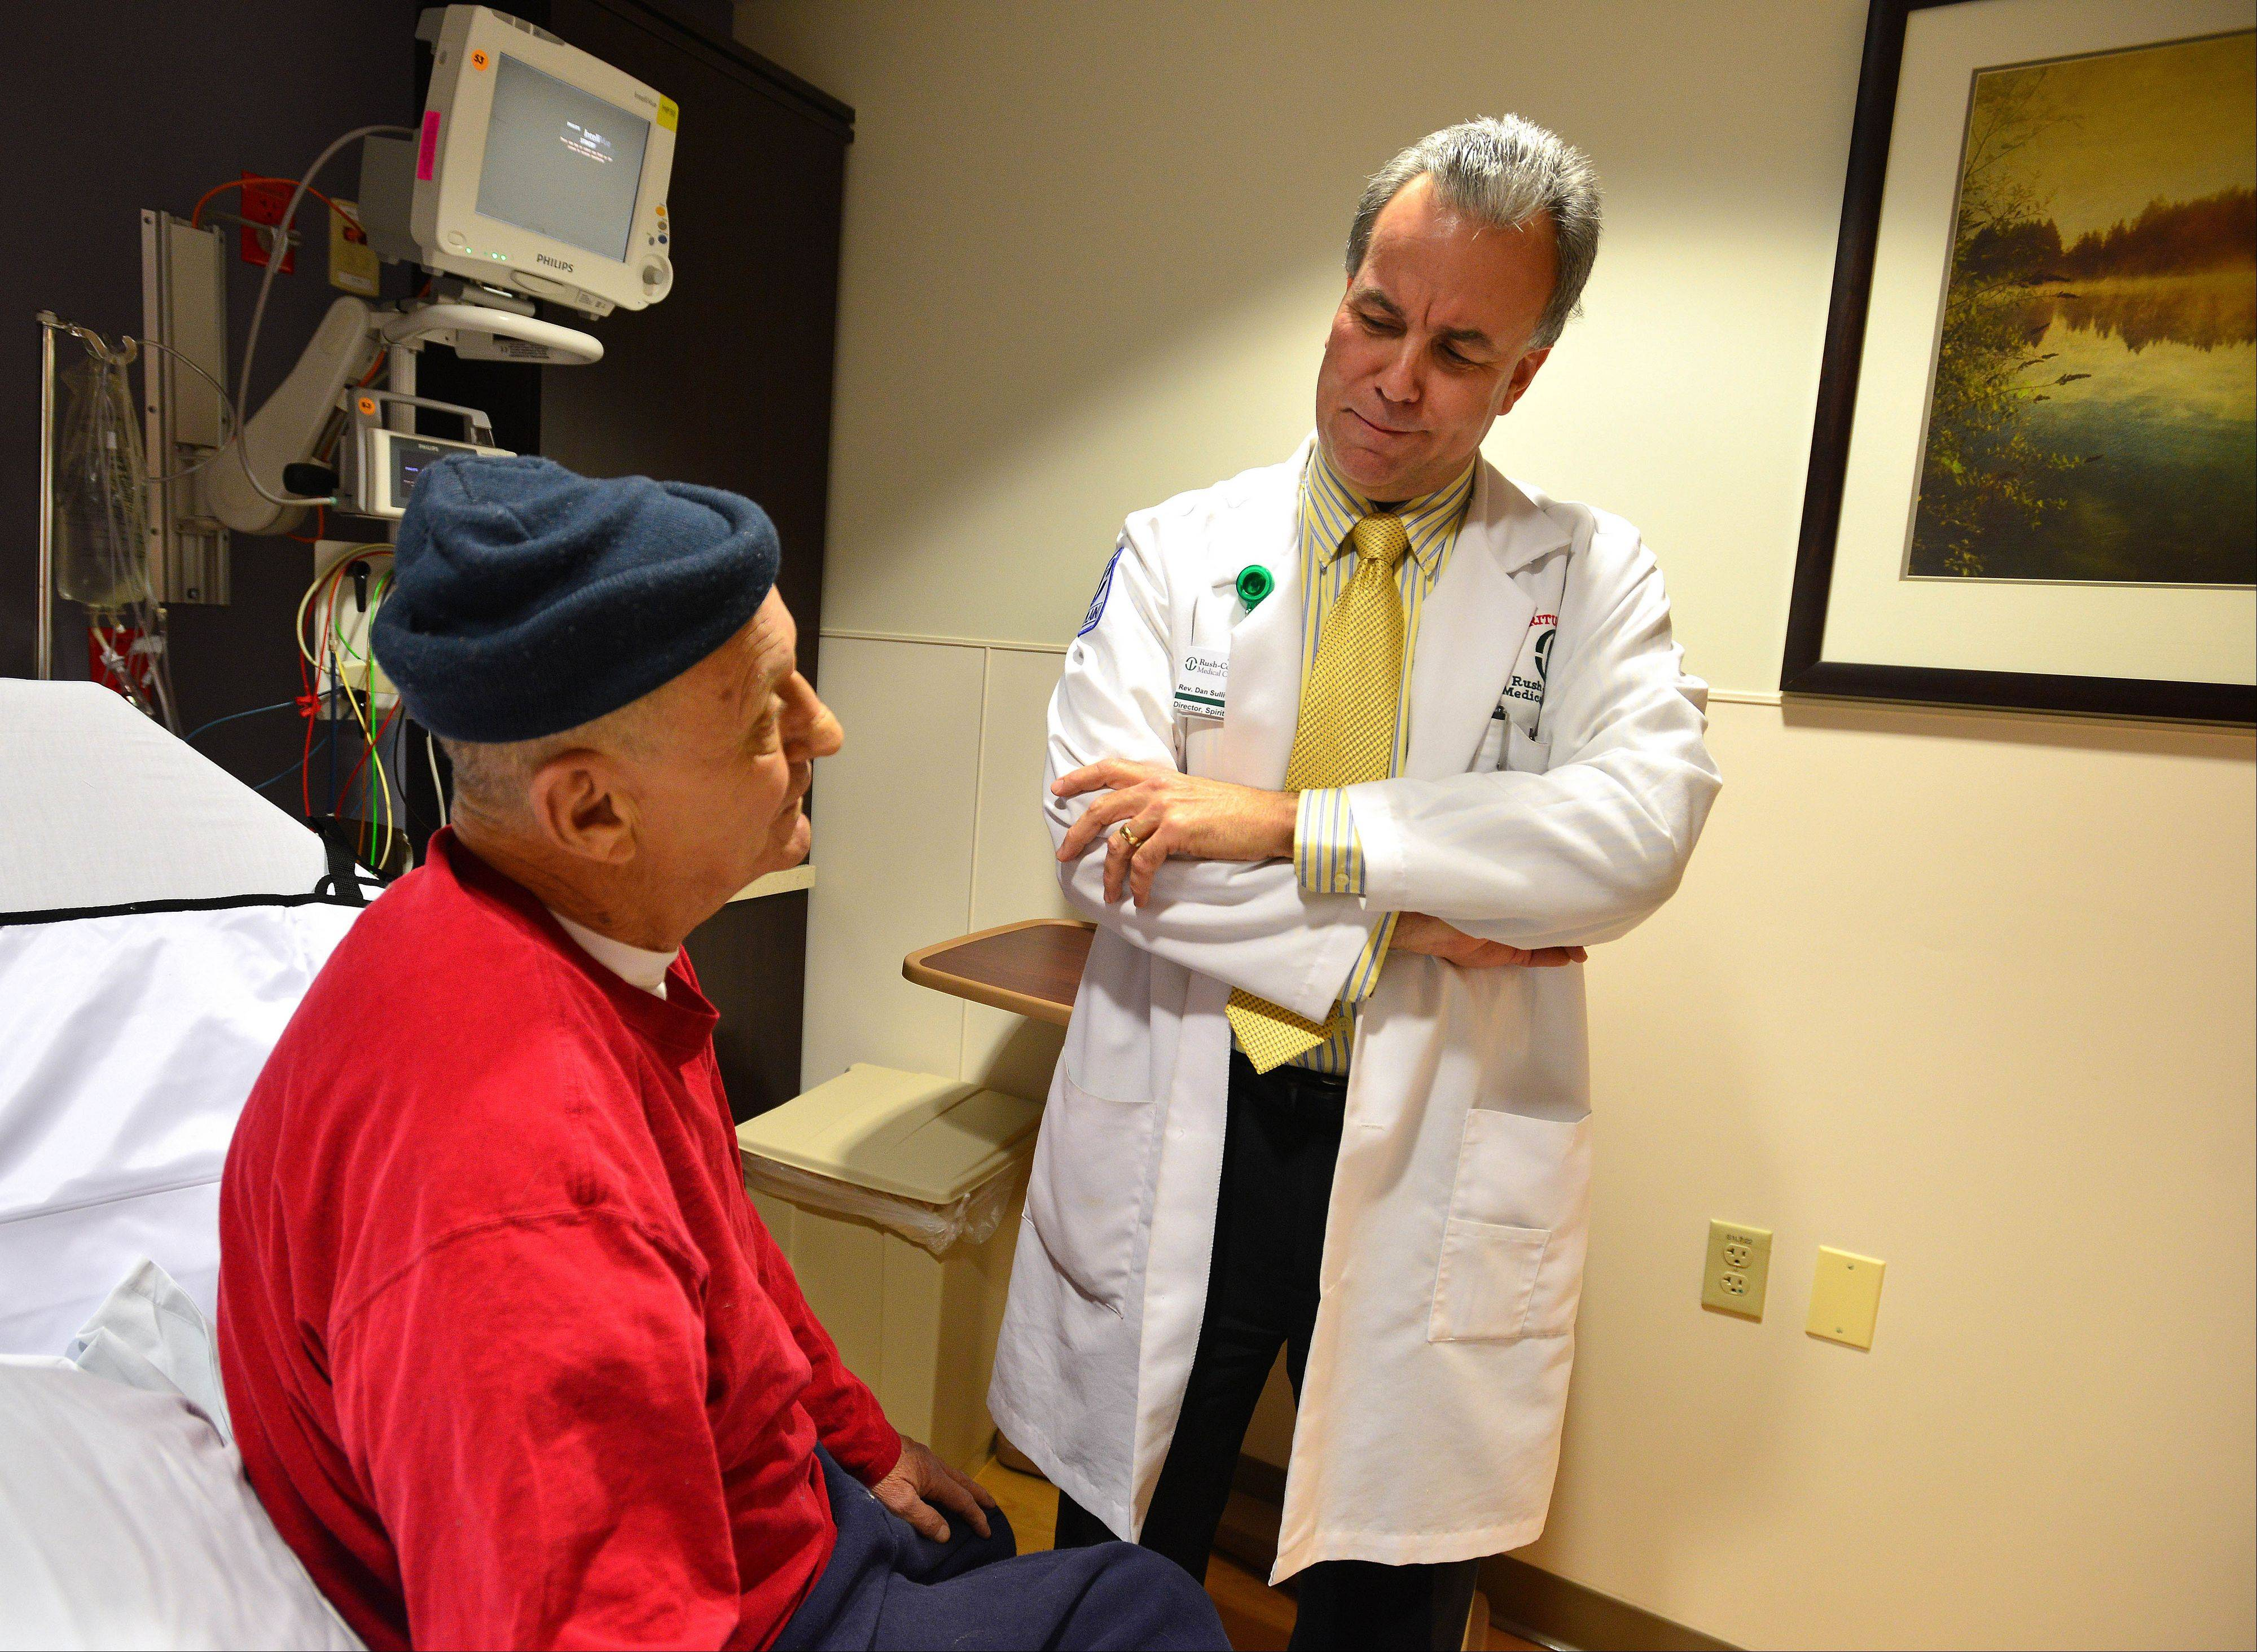 Ray Estes, left, of Aurora chats with Dan Sullivan before being released from Rush-Copley Medical Center in Aurora.